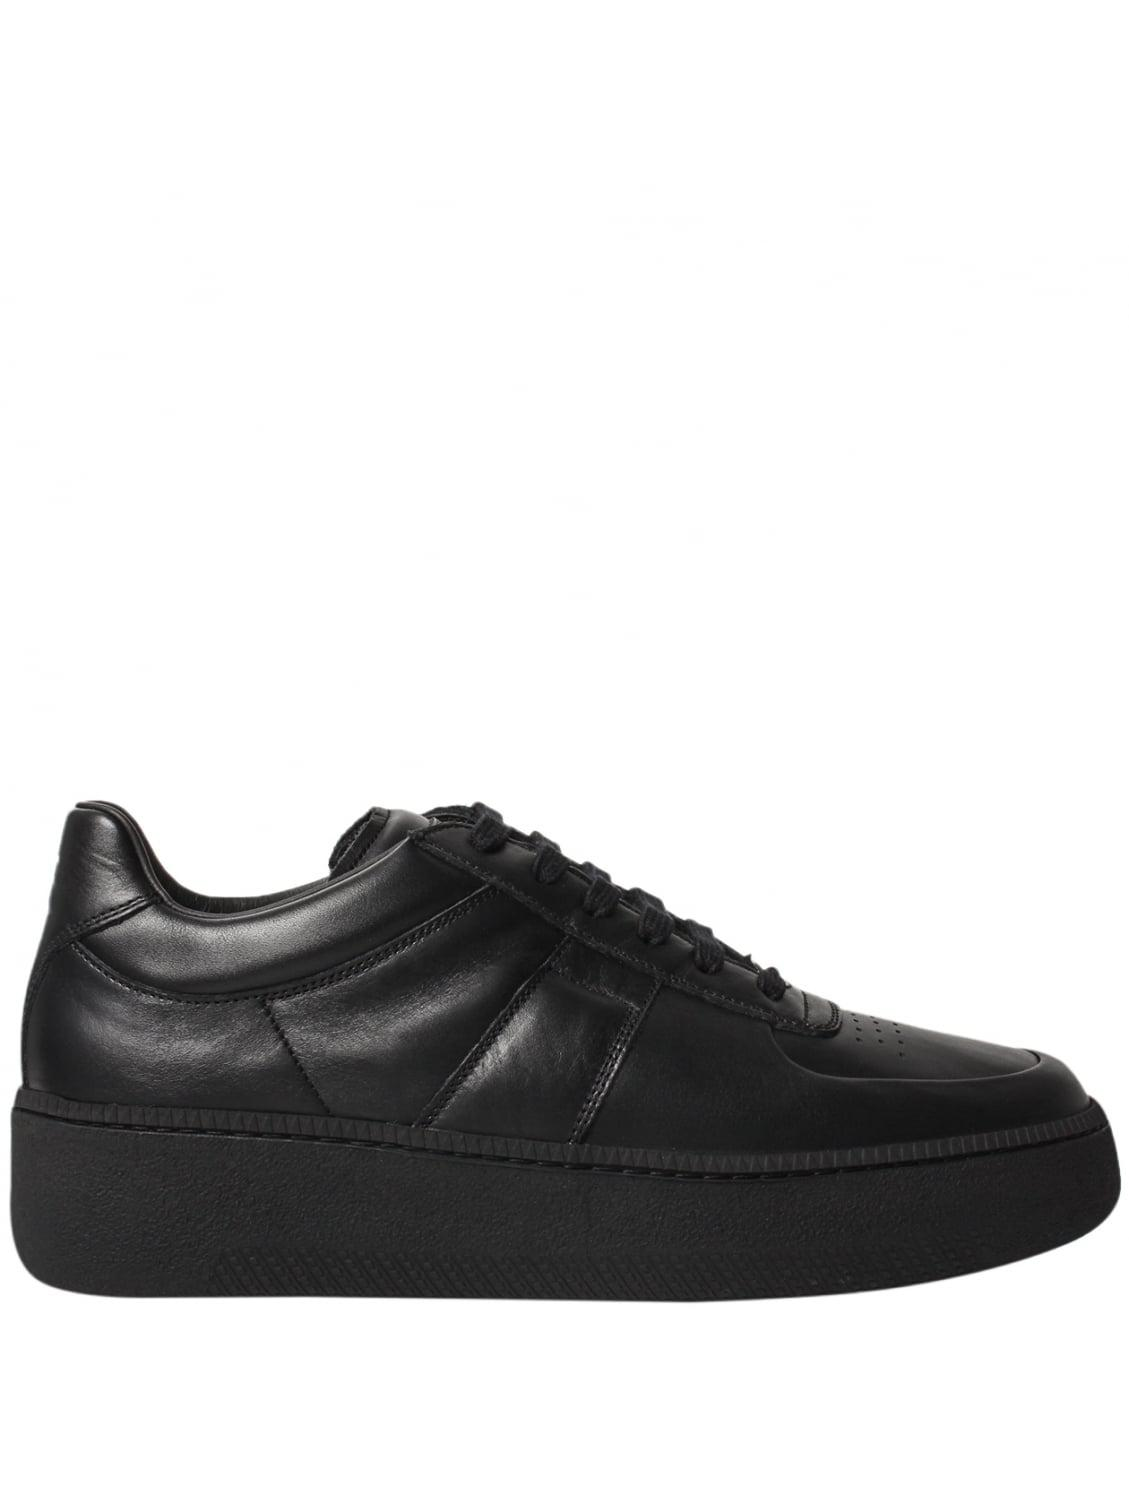 Mens Thick-Sole Leather Sneakers Maison Martin Margiela DE1yALy4UK